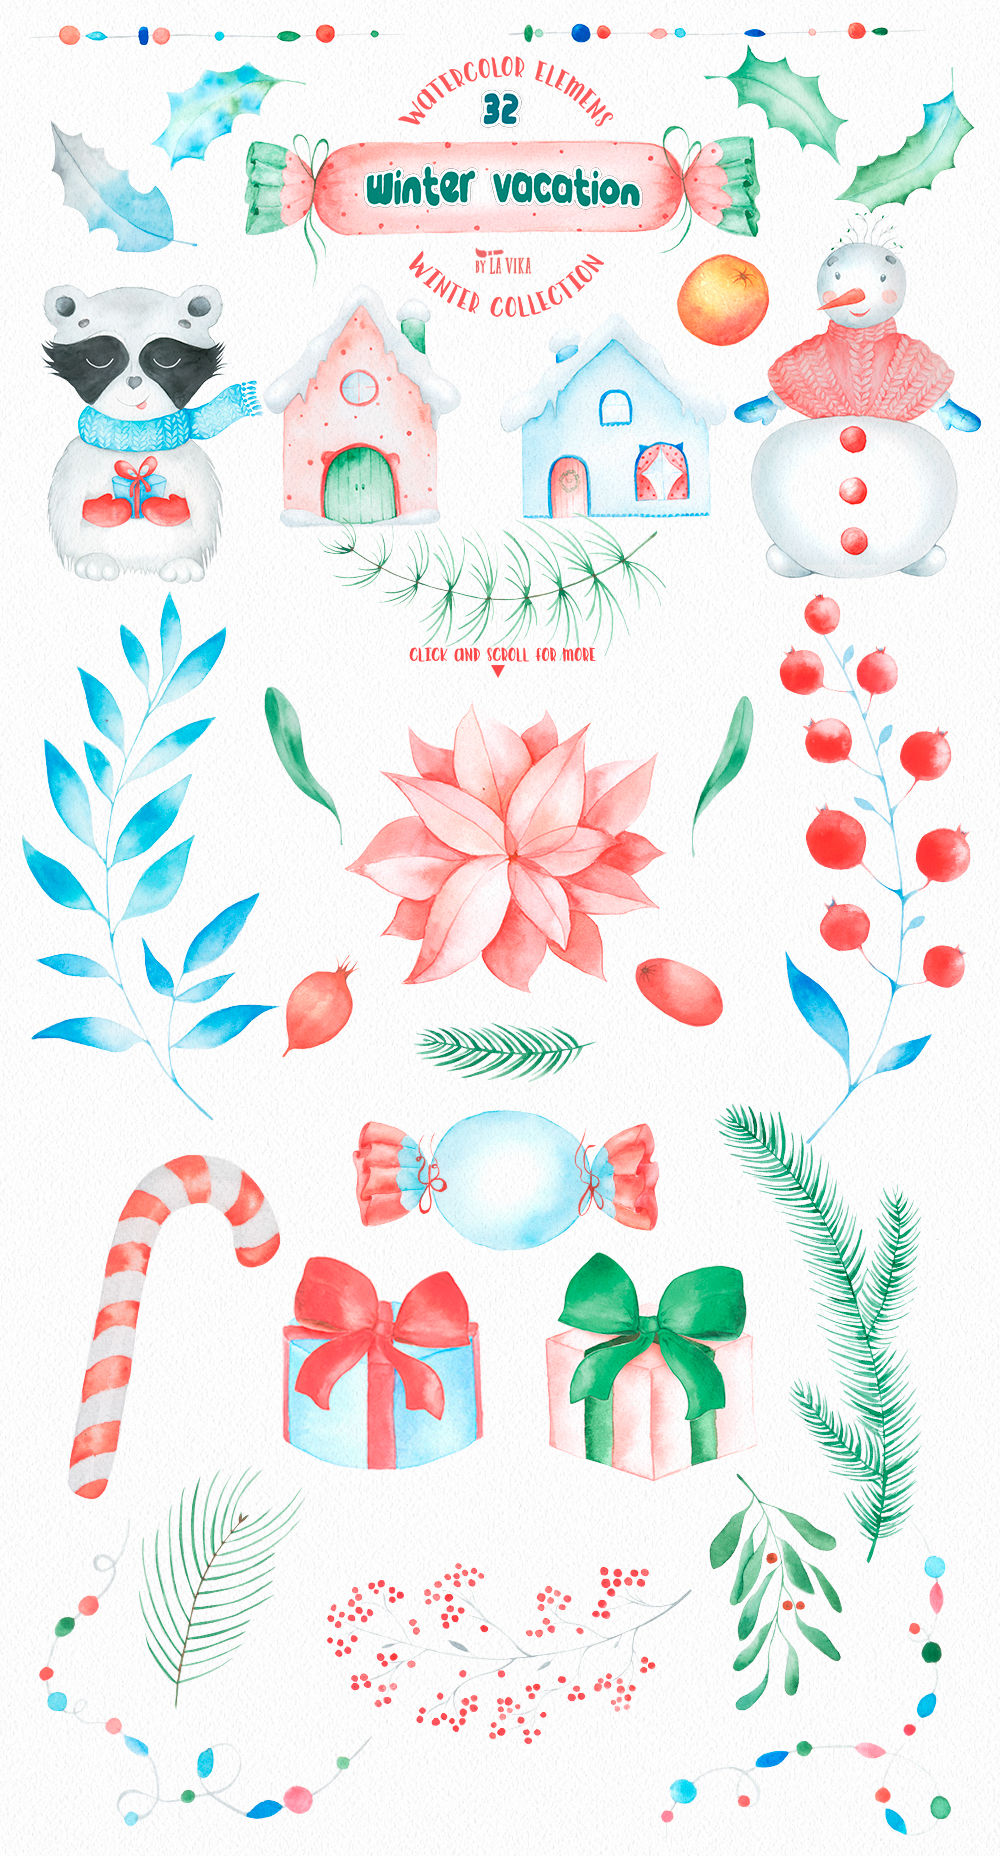 hight resolution of  watercolor winter clipart winter vacation